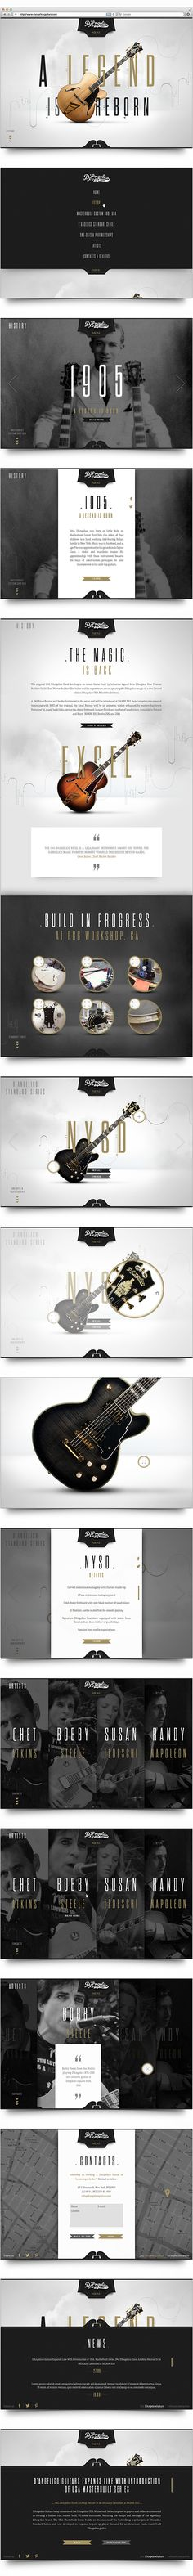 D'Angelico Guitars by Stella Petkova, via Behance